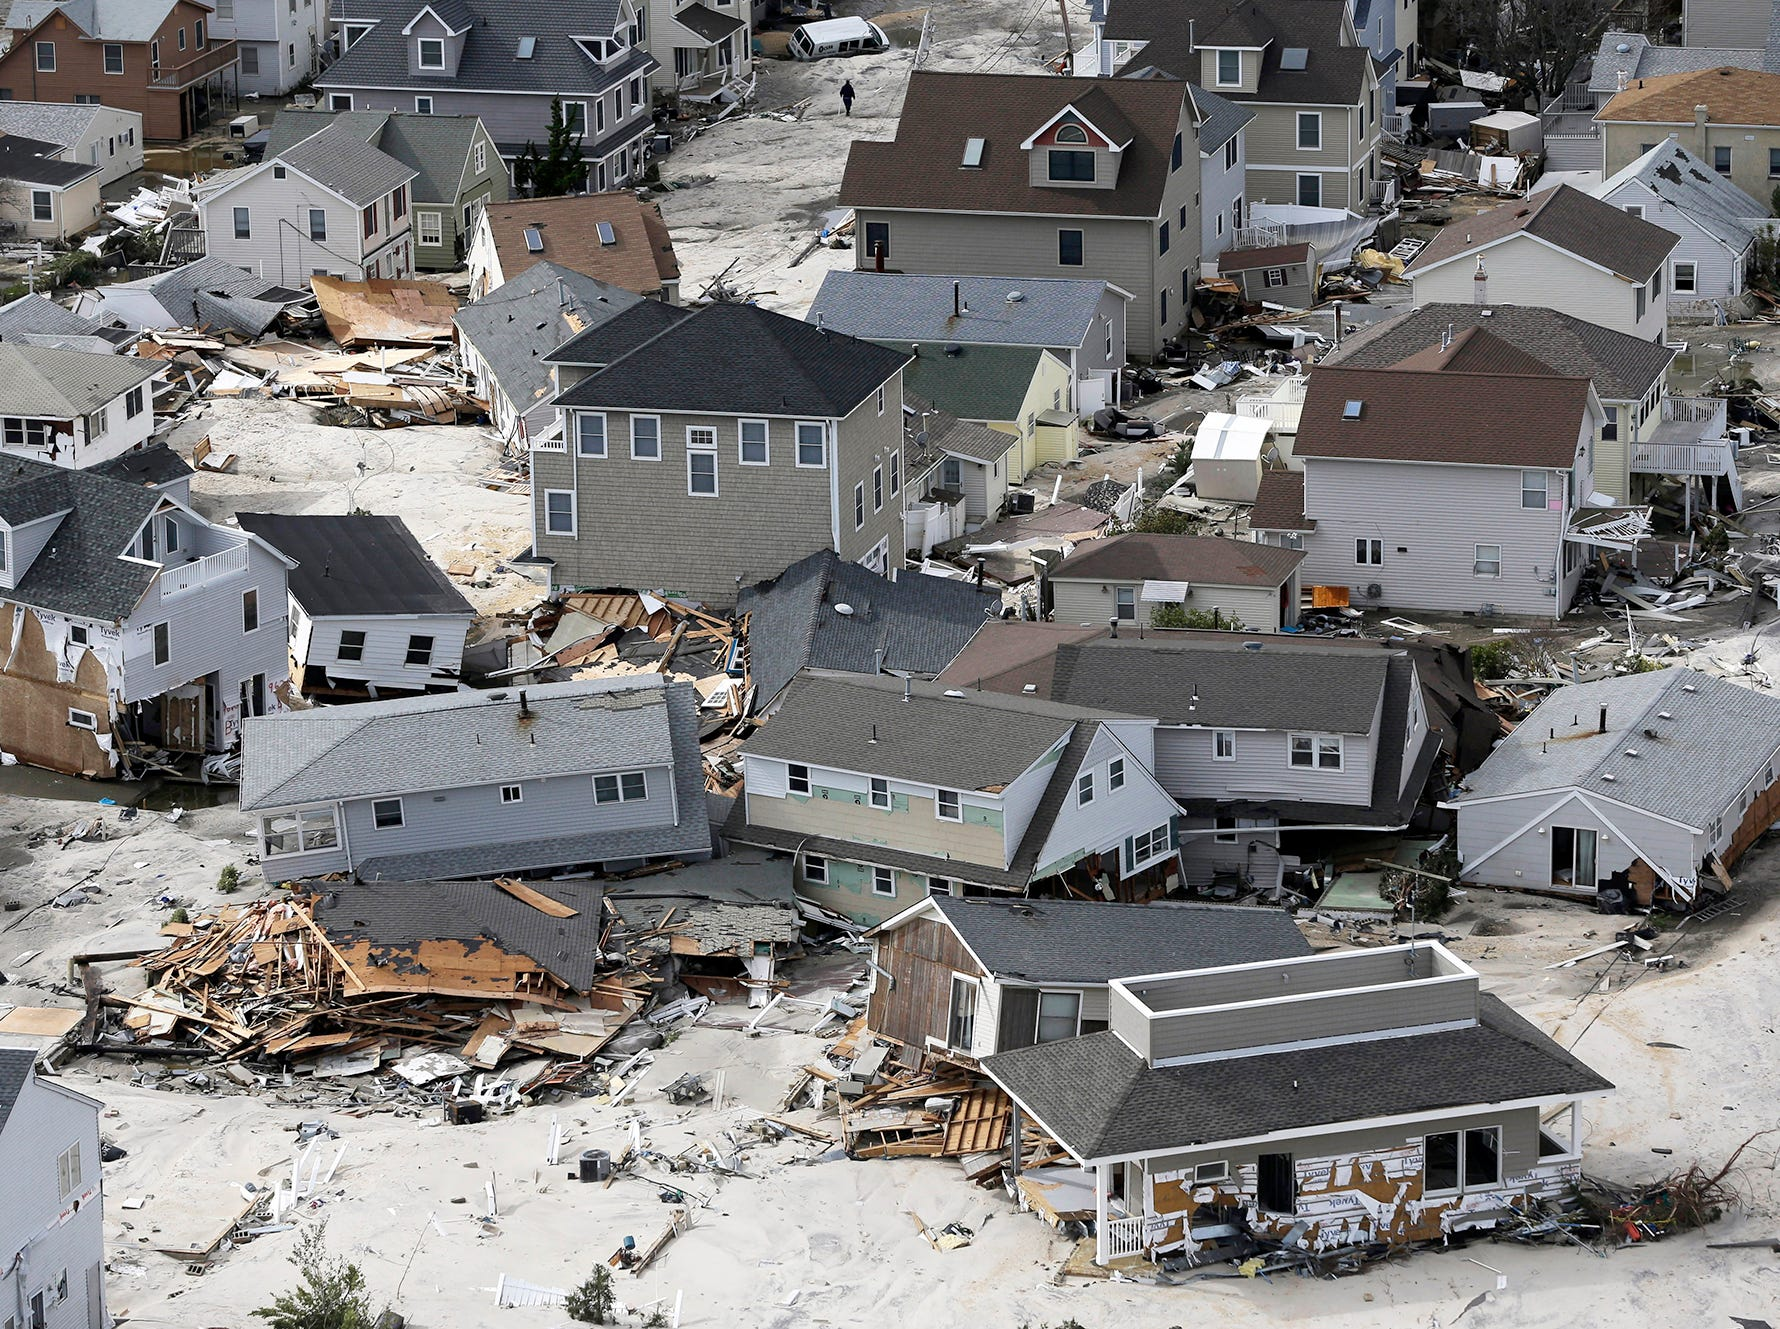 This aerial photo shows destroyed homes left in the wake of superstorm Sandy on Wednesday, Oct. 31, 2012, in Seaside Heights, N.J. New Jersey got the brunt of Sandy, which made landfall in the state and killed six people. More than 2 million customers were without power as of Wednesday afternoon, down from a peak of 2.7 million. (AP Photo/Mike Groll)